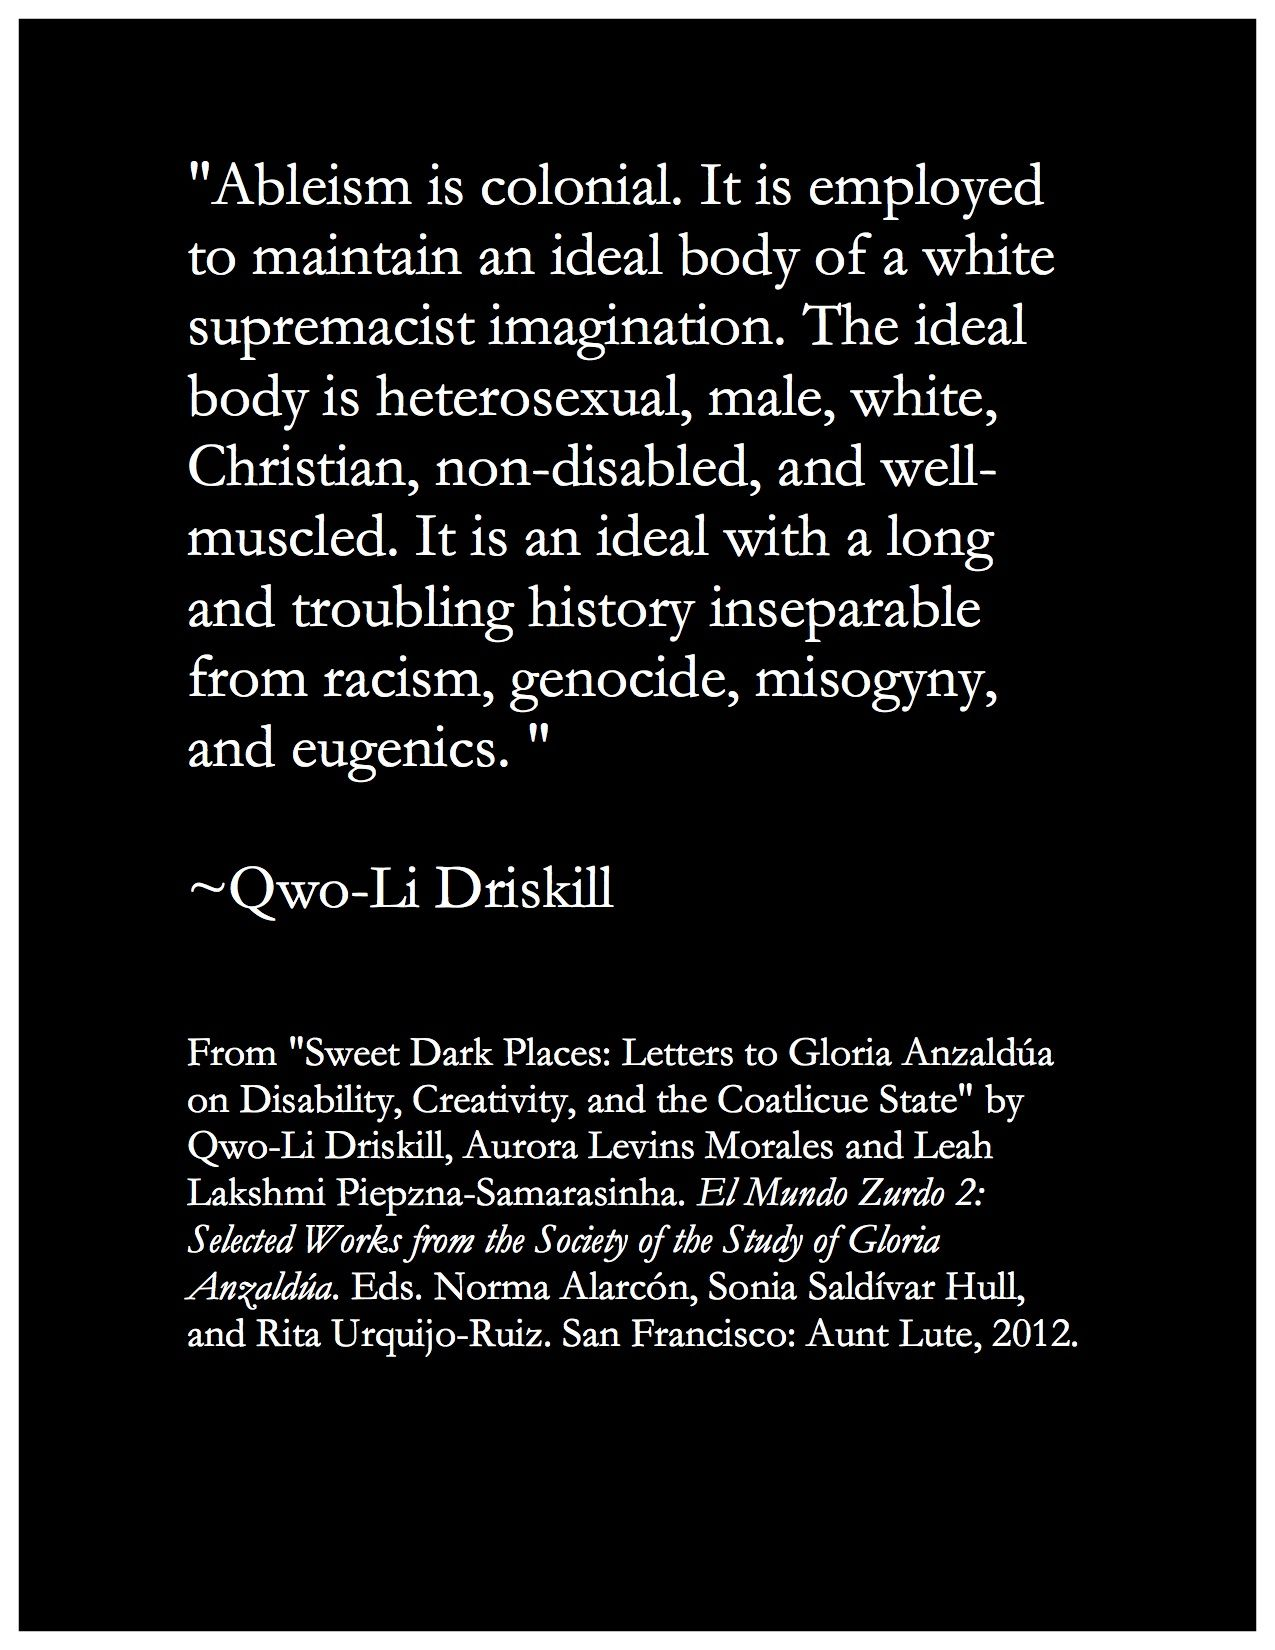 Quotation From Wgss Faculty Dr QwoLi Driskill From Sweet Dark